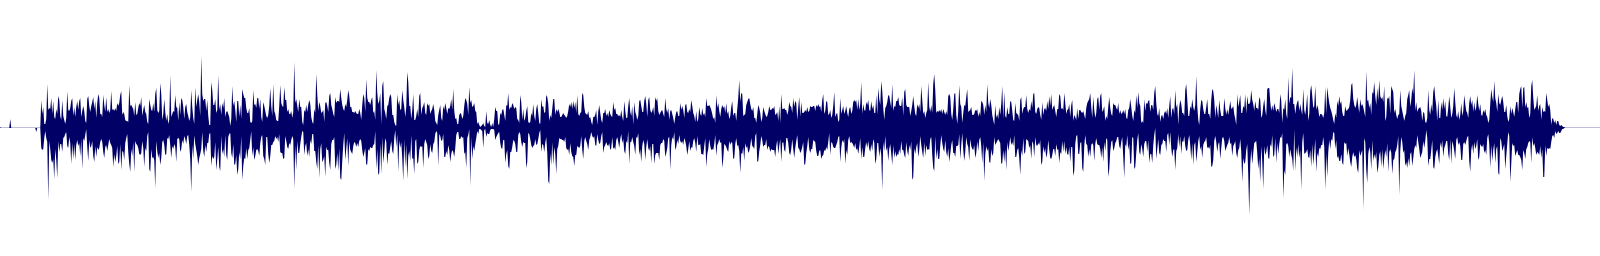 waveform of track #138026